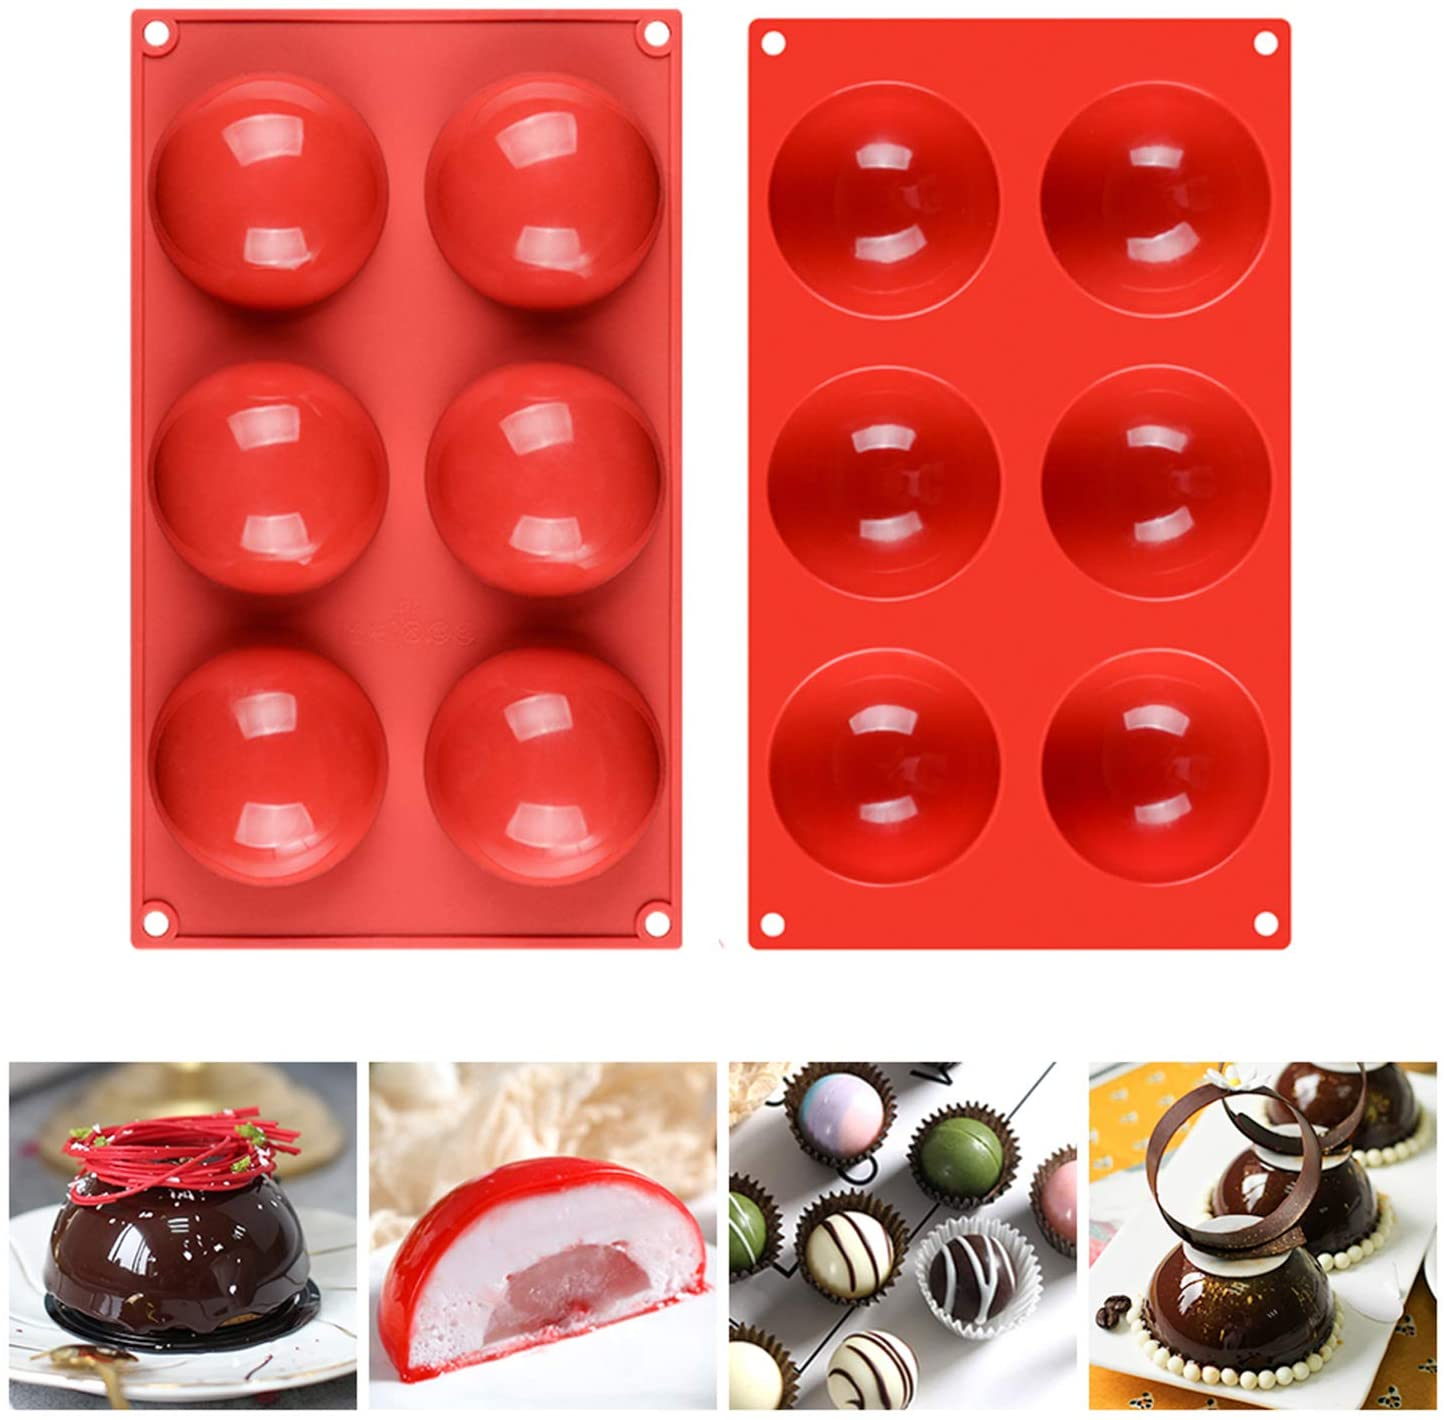 6 Holes Silicone Molds for Chocolate, Jelly, Cake, Pudding. Soap Molds for Soap Making, Set of 2, Round Shape Dia: 3 inches